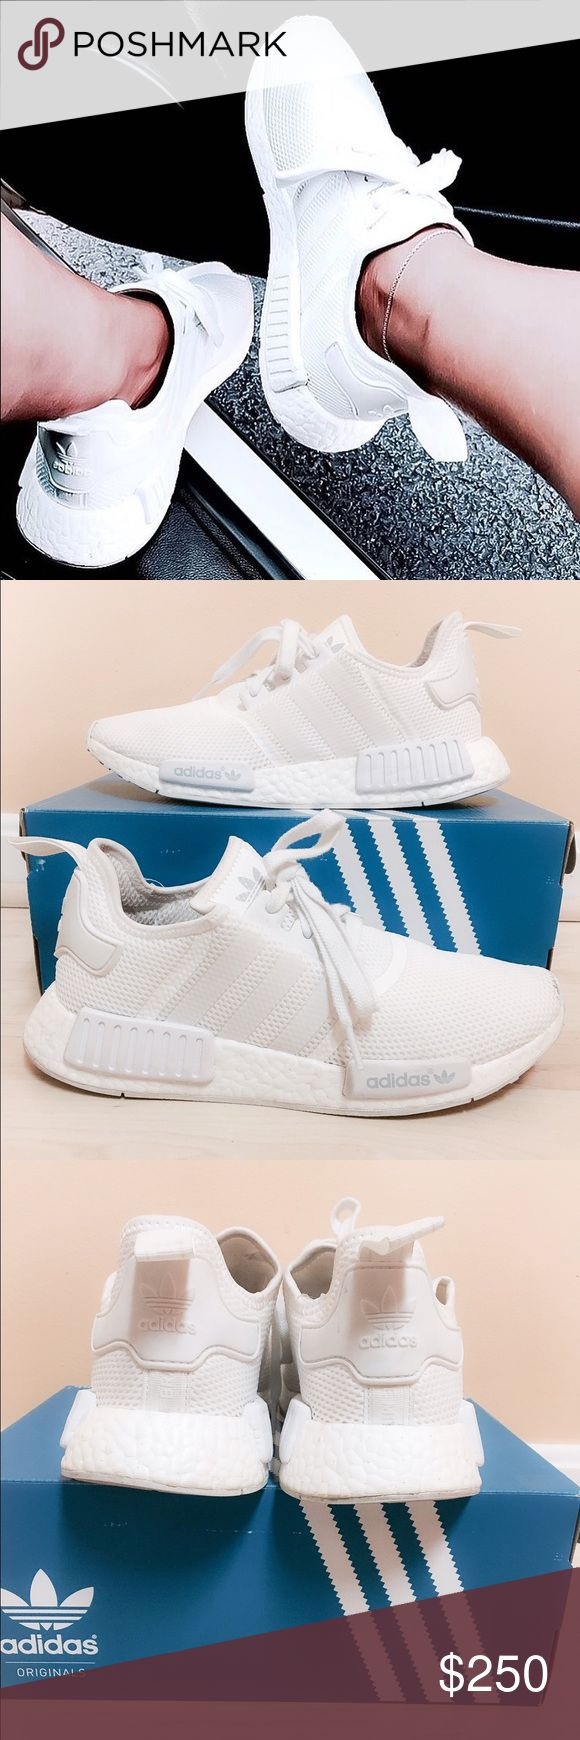 jqmxlc 1000+ ideas about All White Nmd on Pinterest